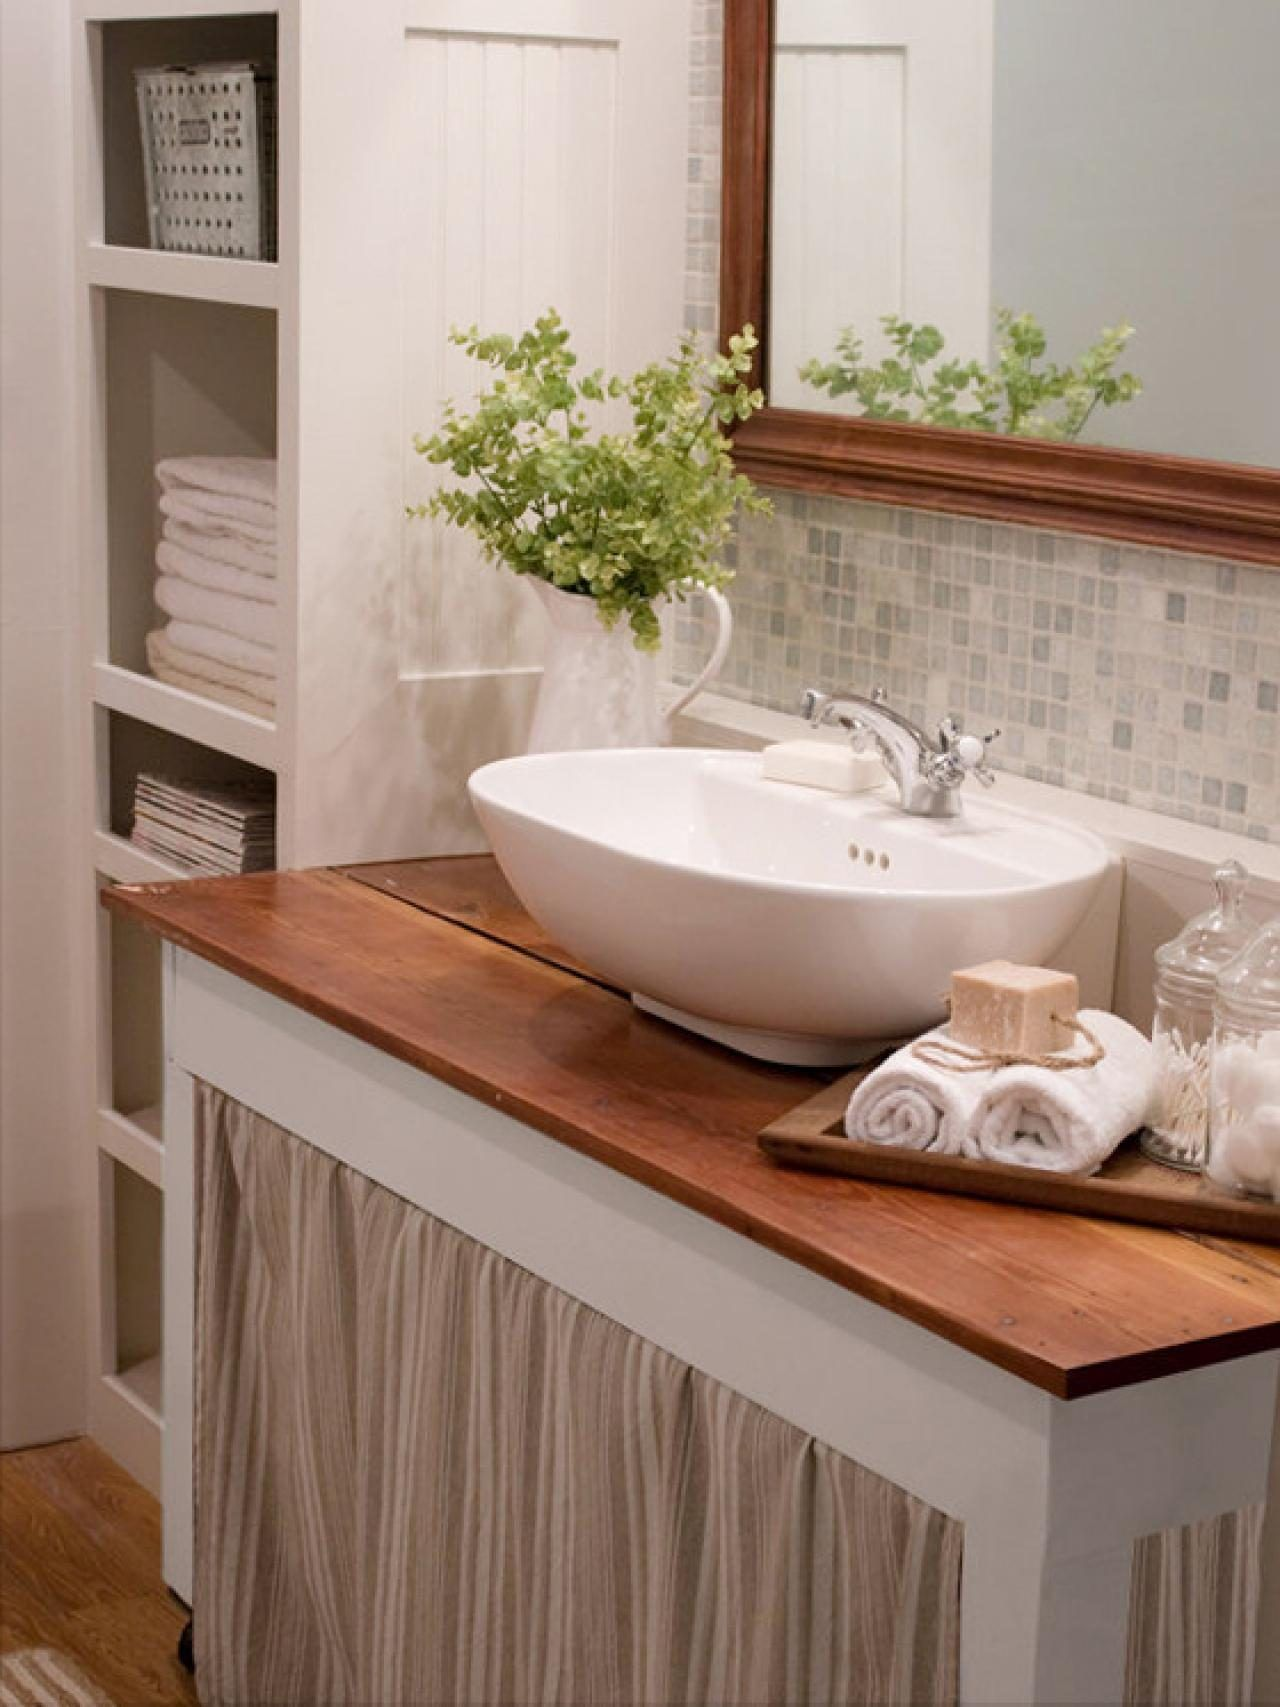 lowes bathroom top picture small design plan vanity finest ideas